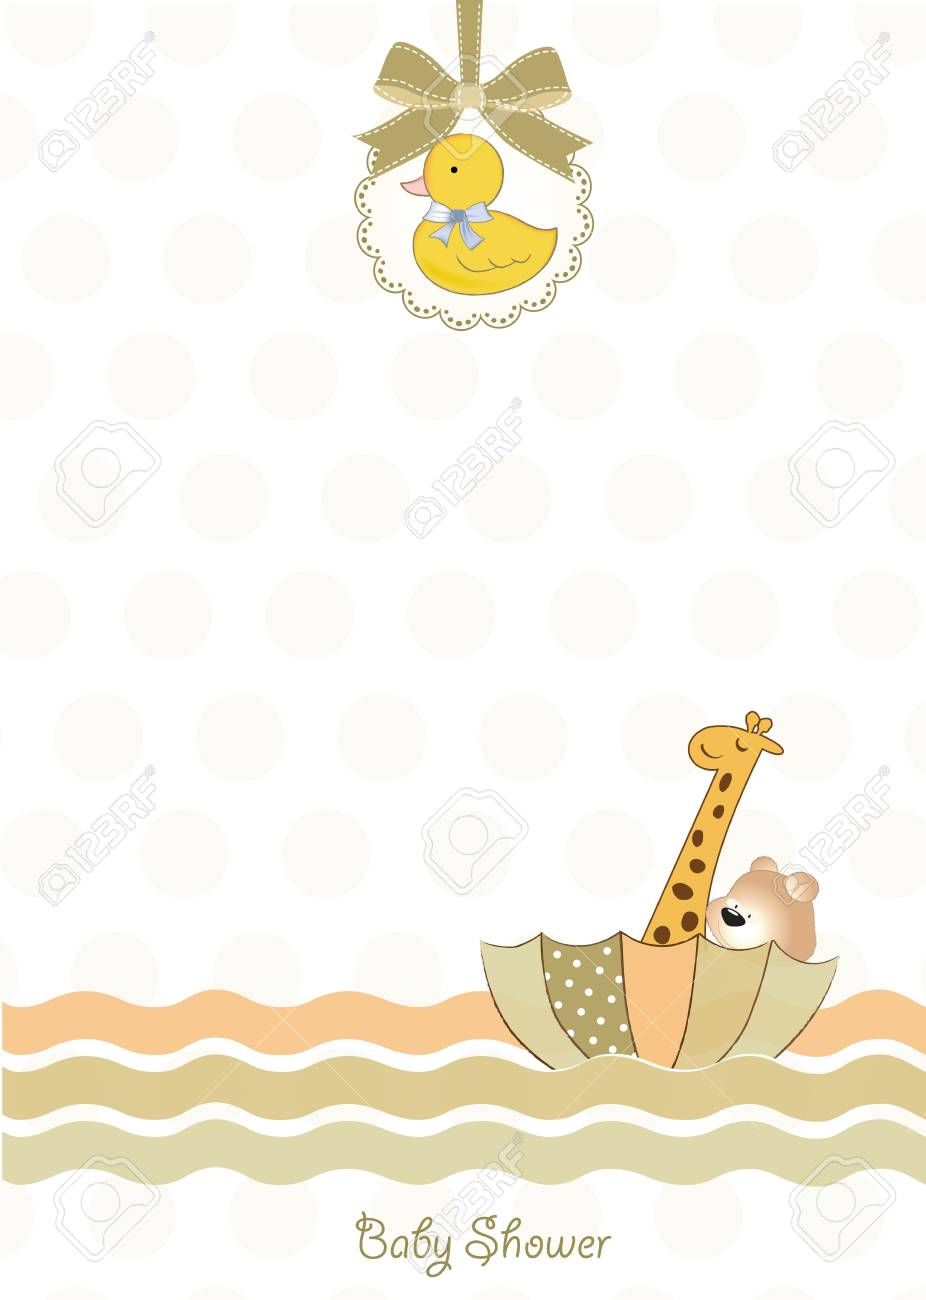 baby shower invitation Stock Vector - 9806538